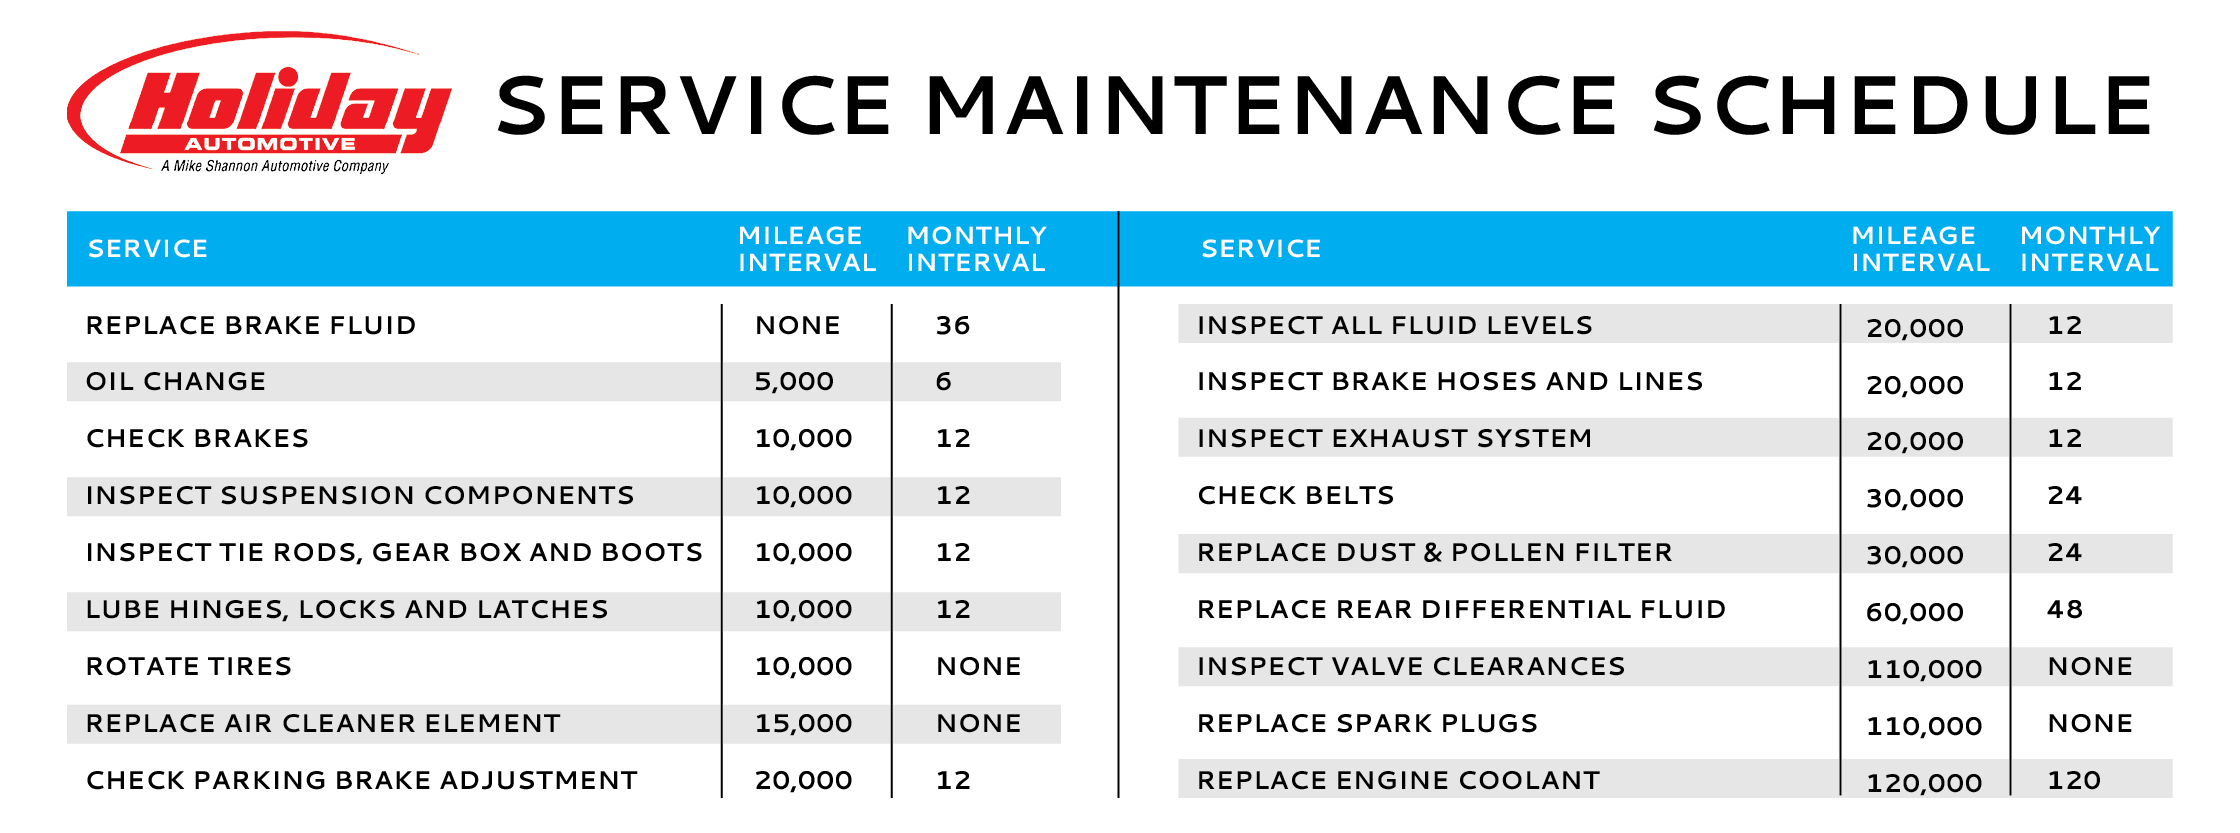 Marvelous When Should You Do Maintenance For A High Mileage Vehicle